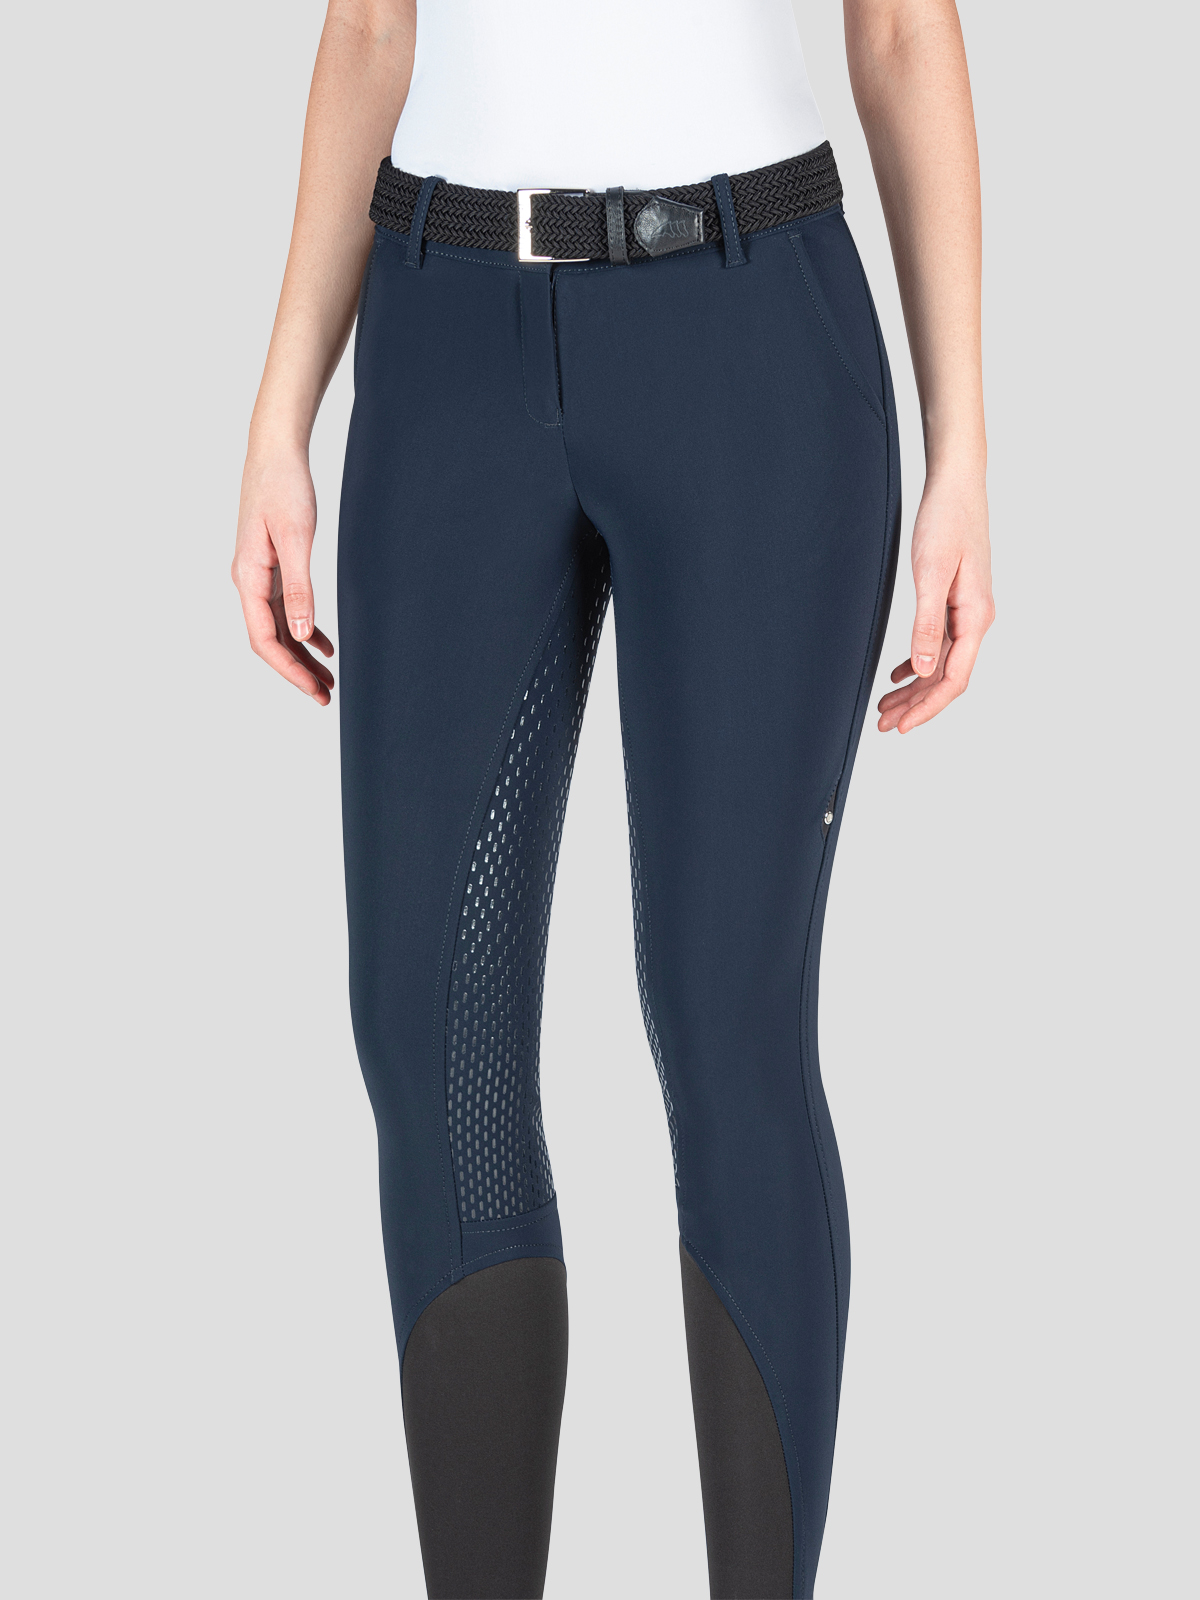 JULIK WOMEN'S FULL GRIP RIDING BREECHES IN B-MOVE FABRIC 9